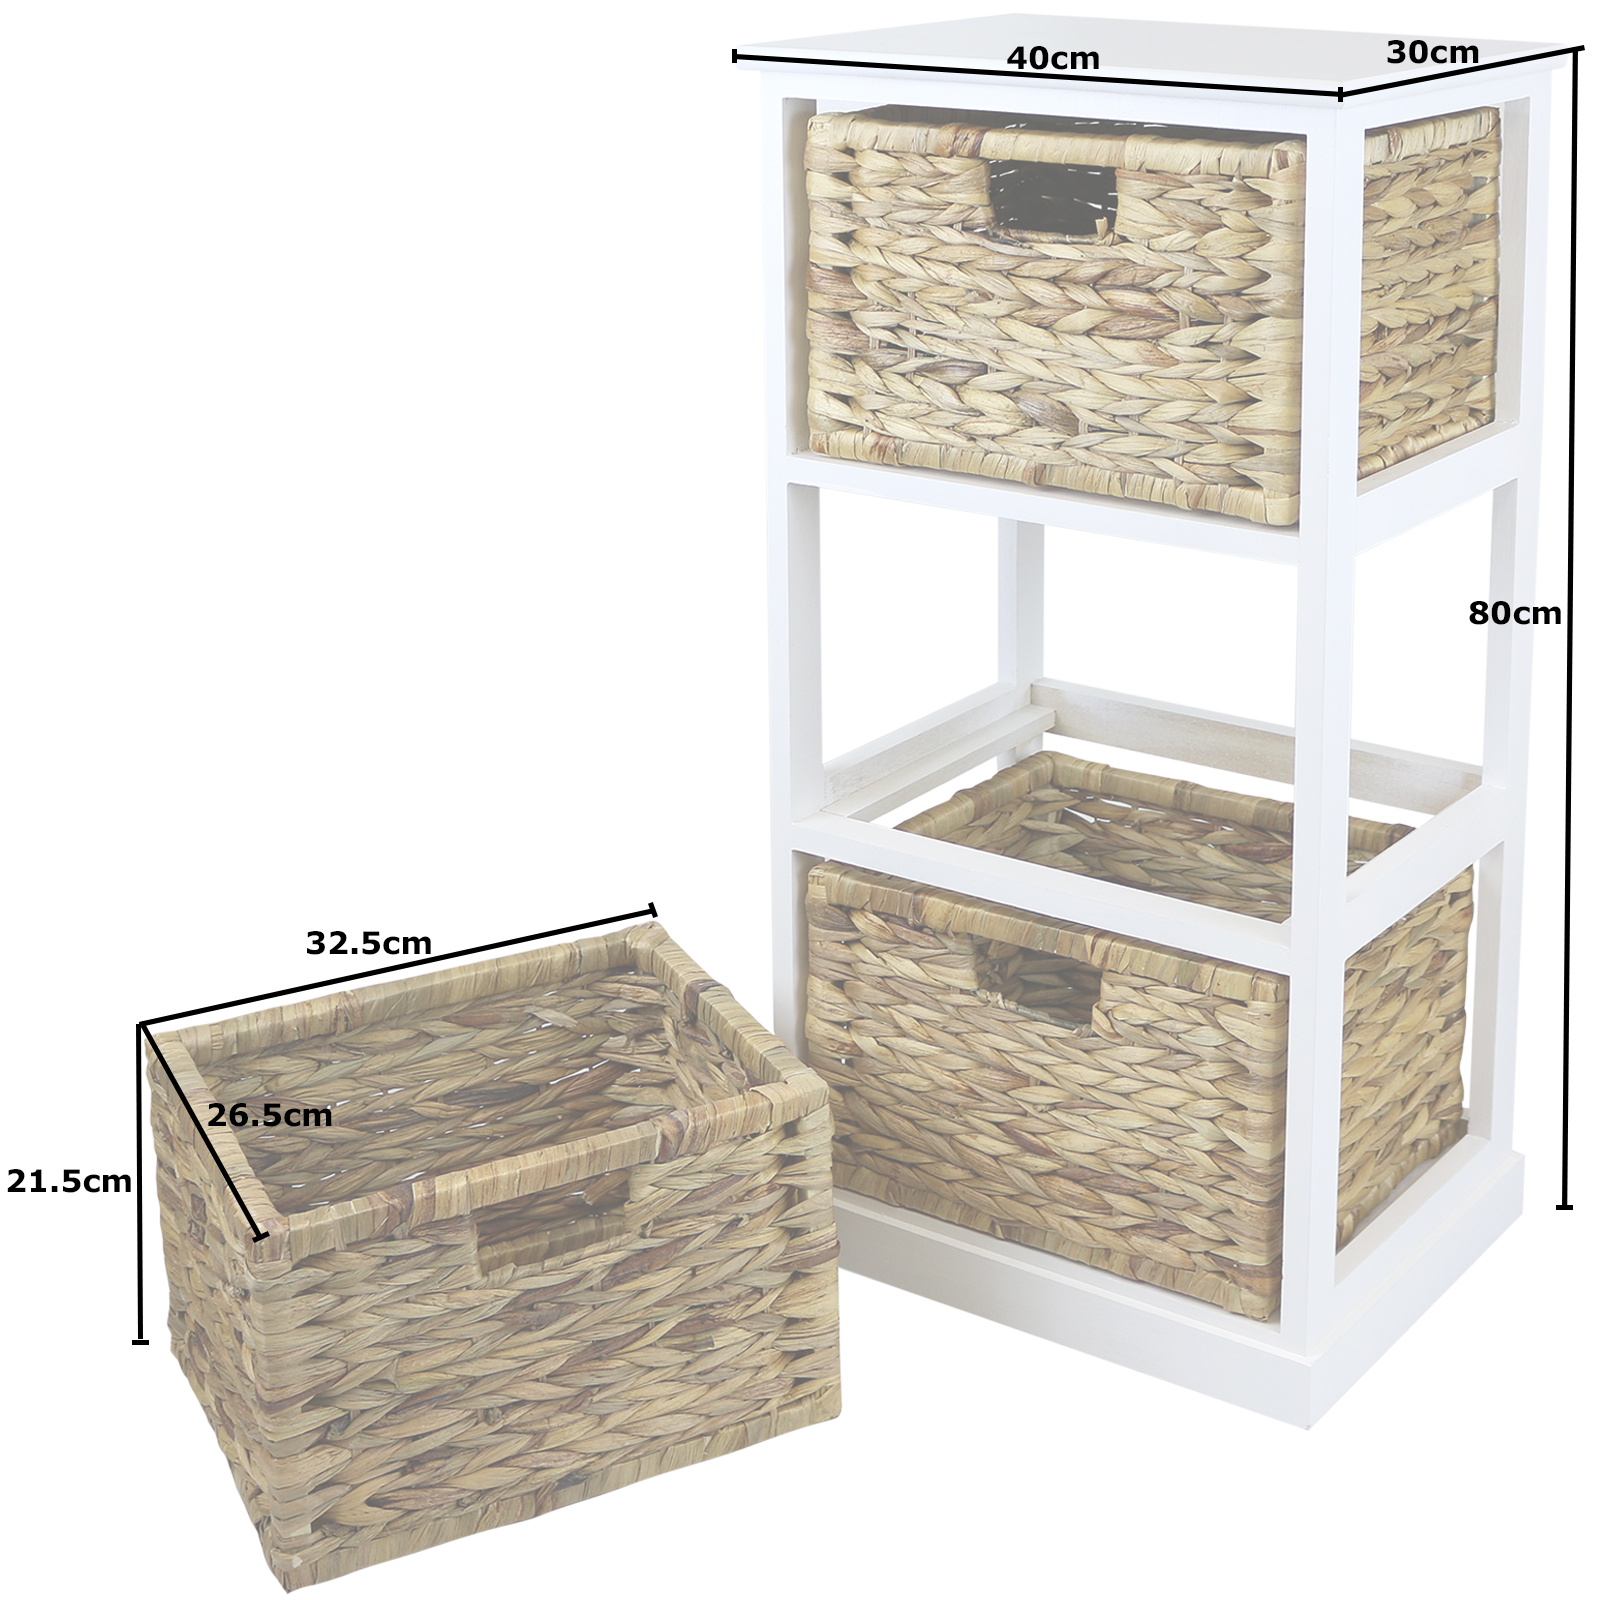 Hartleys white 3 basket chest home storage unit wicker for Bathroom cabinets 40cm wide